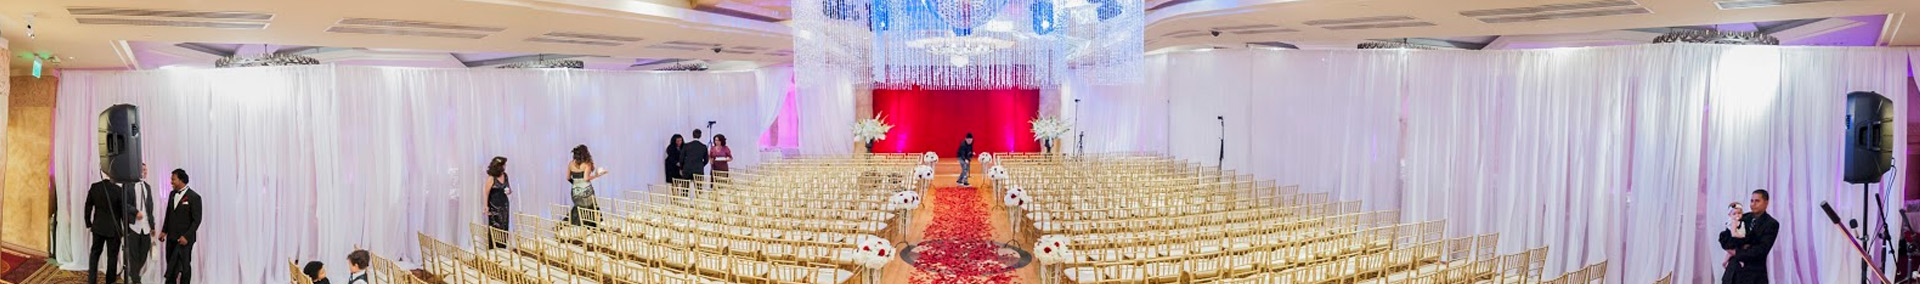 Wedding ceremony setup on dance floor